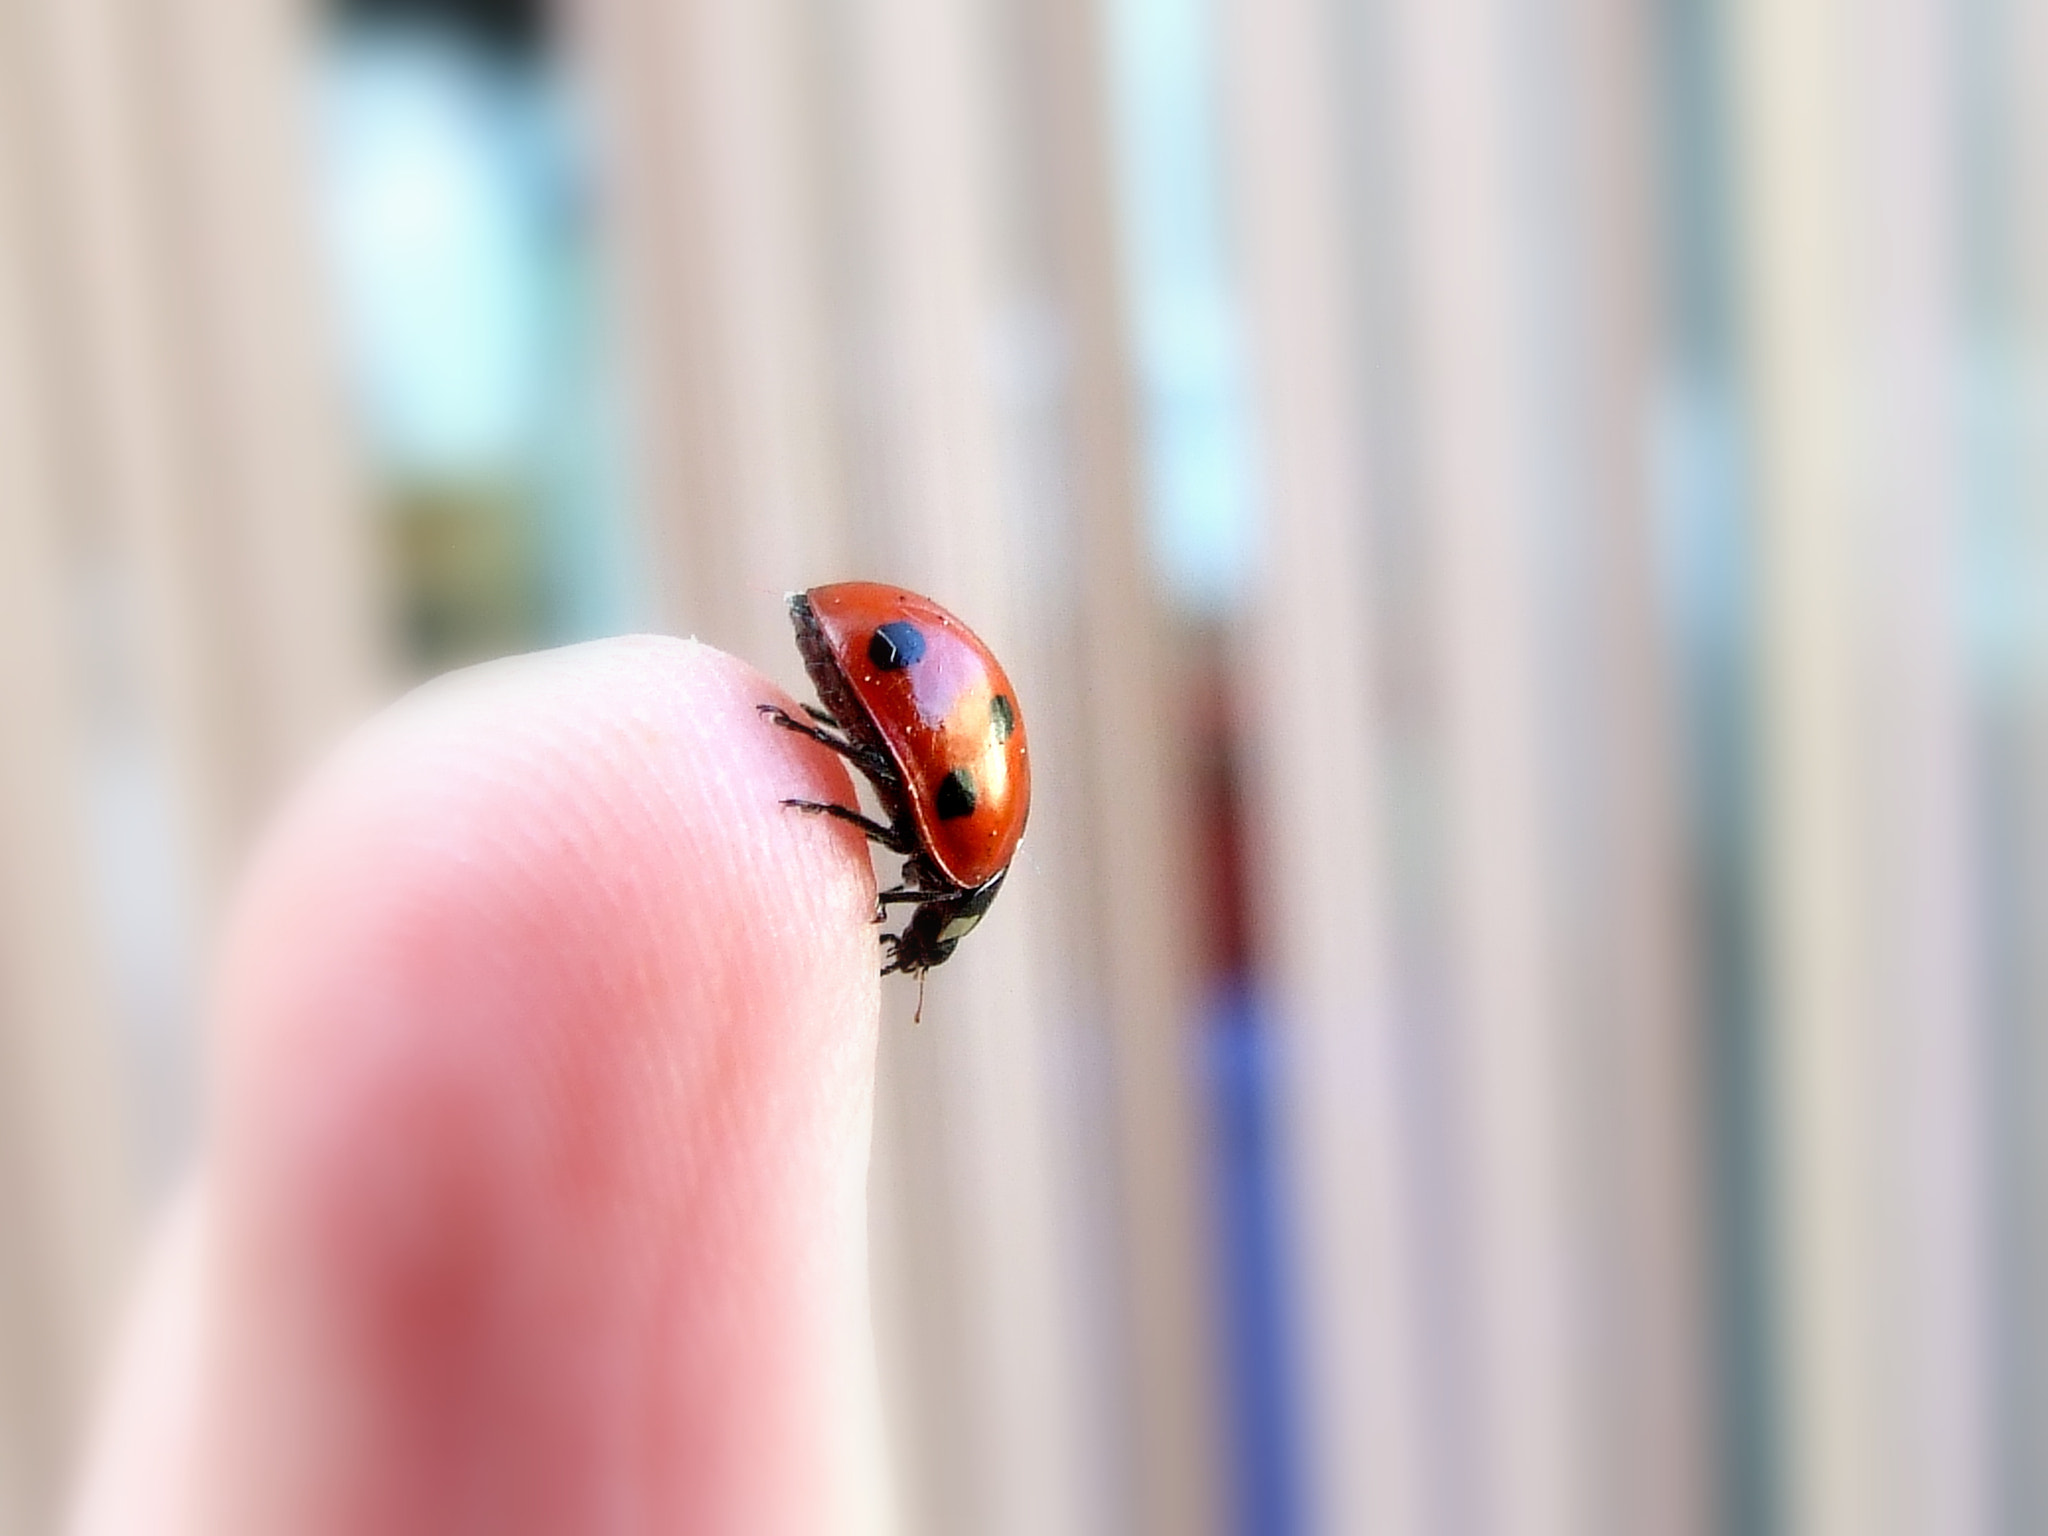 Photograph Coccinelle by Mel Mel' on 500px